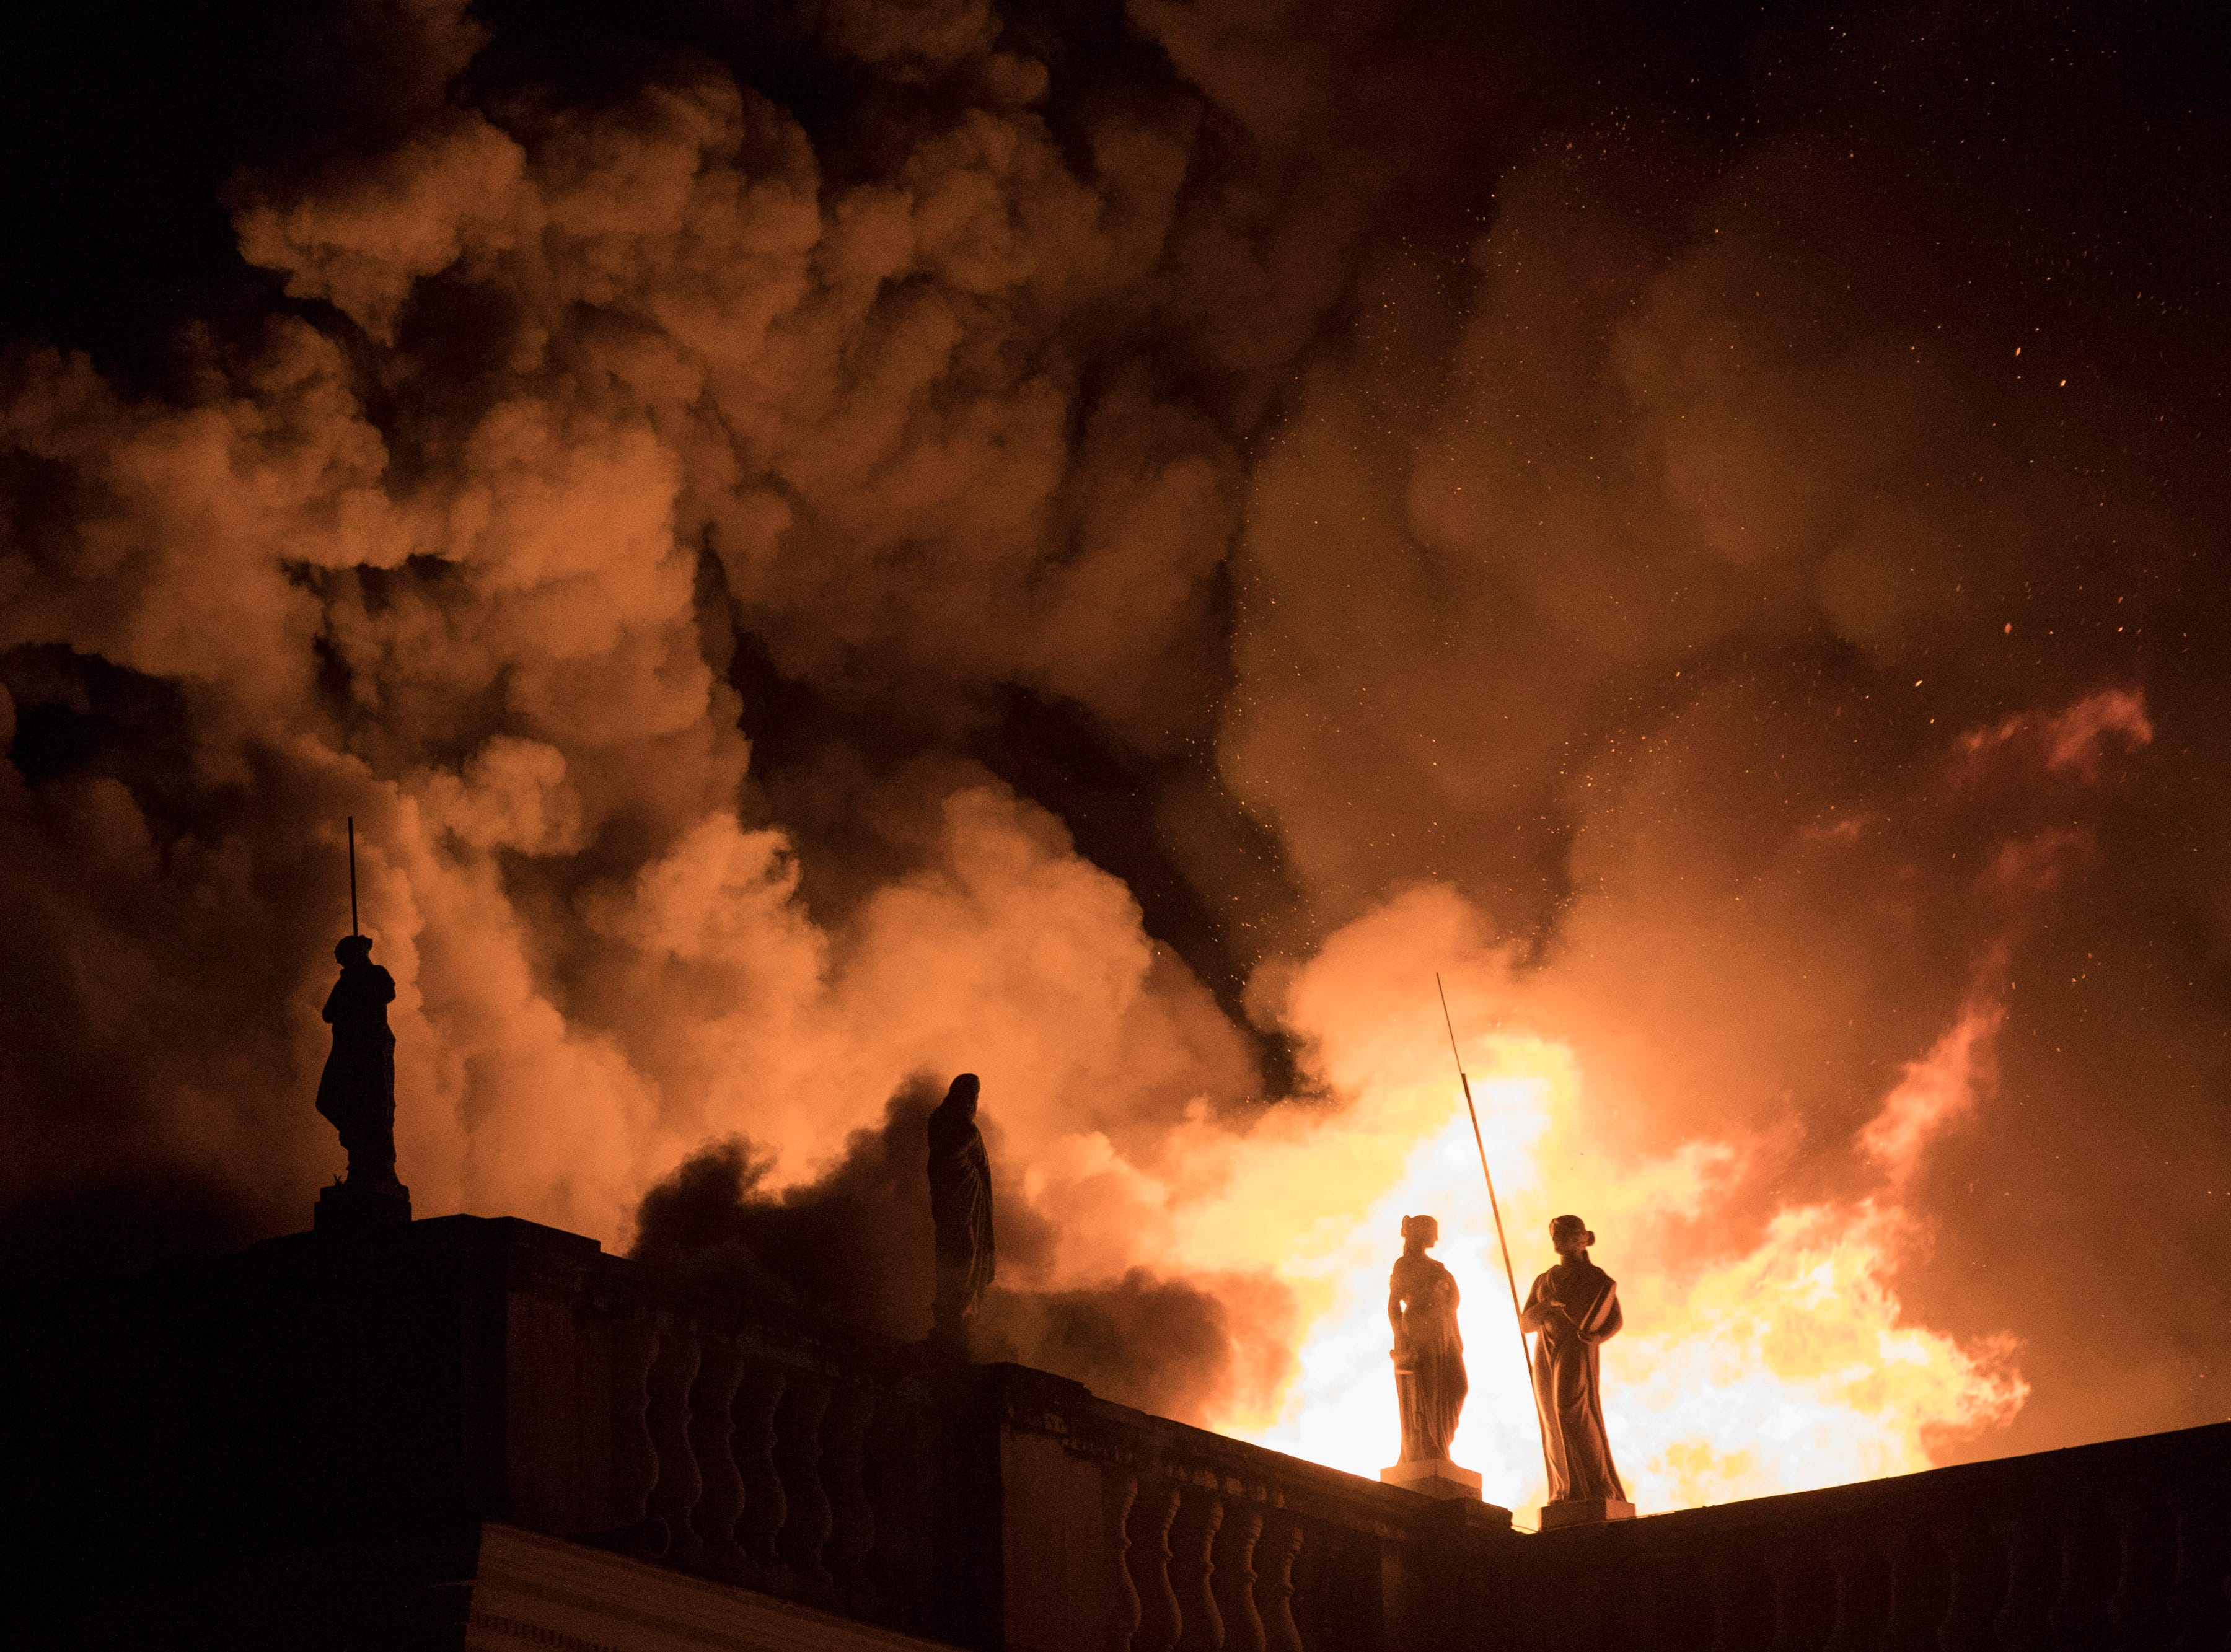 Flames engulf the 200-year-old National Museum of Brazil, in Rio de Janeiro, Sunday, Sept. 2, 2018. According to its website, the museum has thousands of items related to the history of Brazil and other countries. The museum is part of the Federal University of Rio de Janeiro.